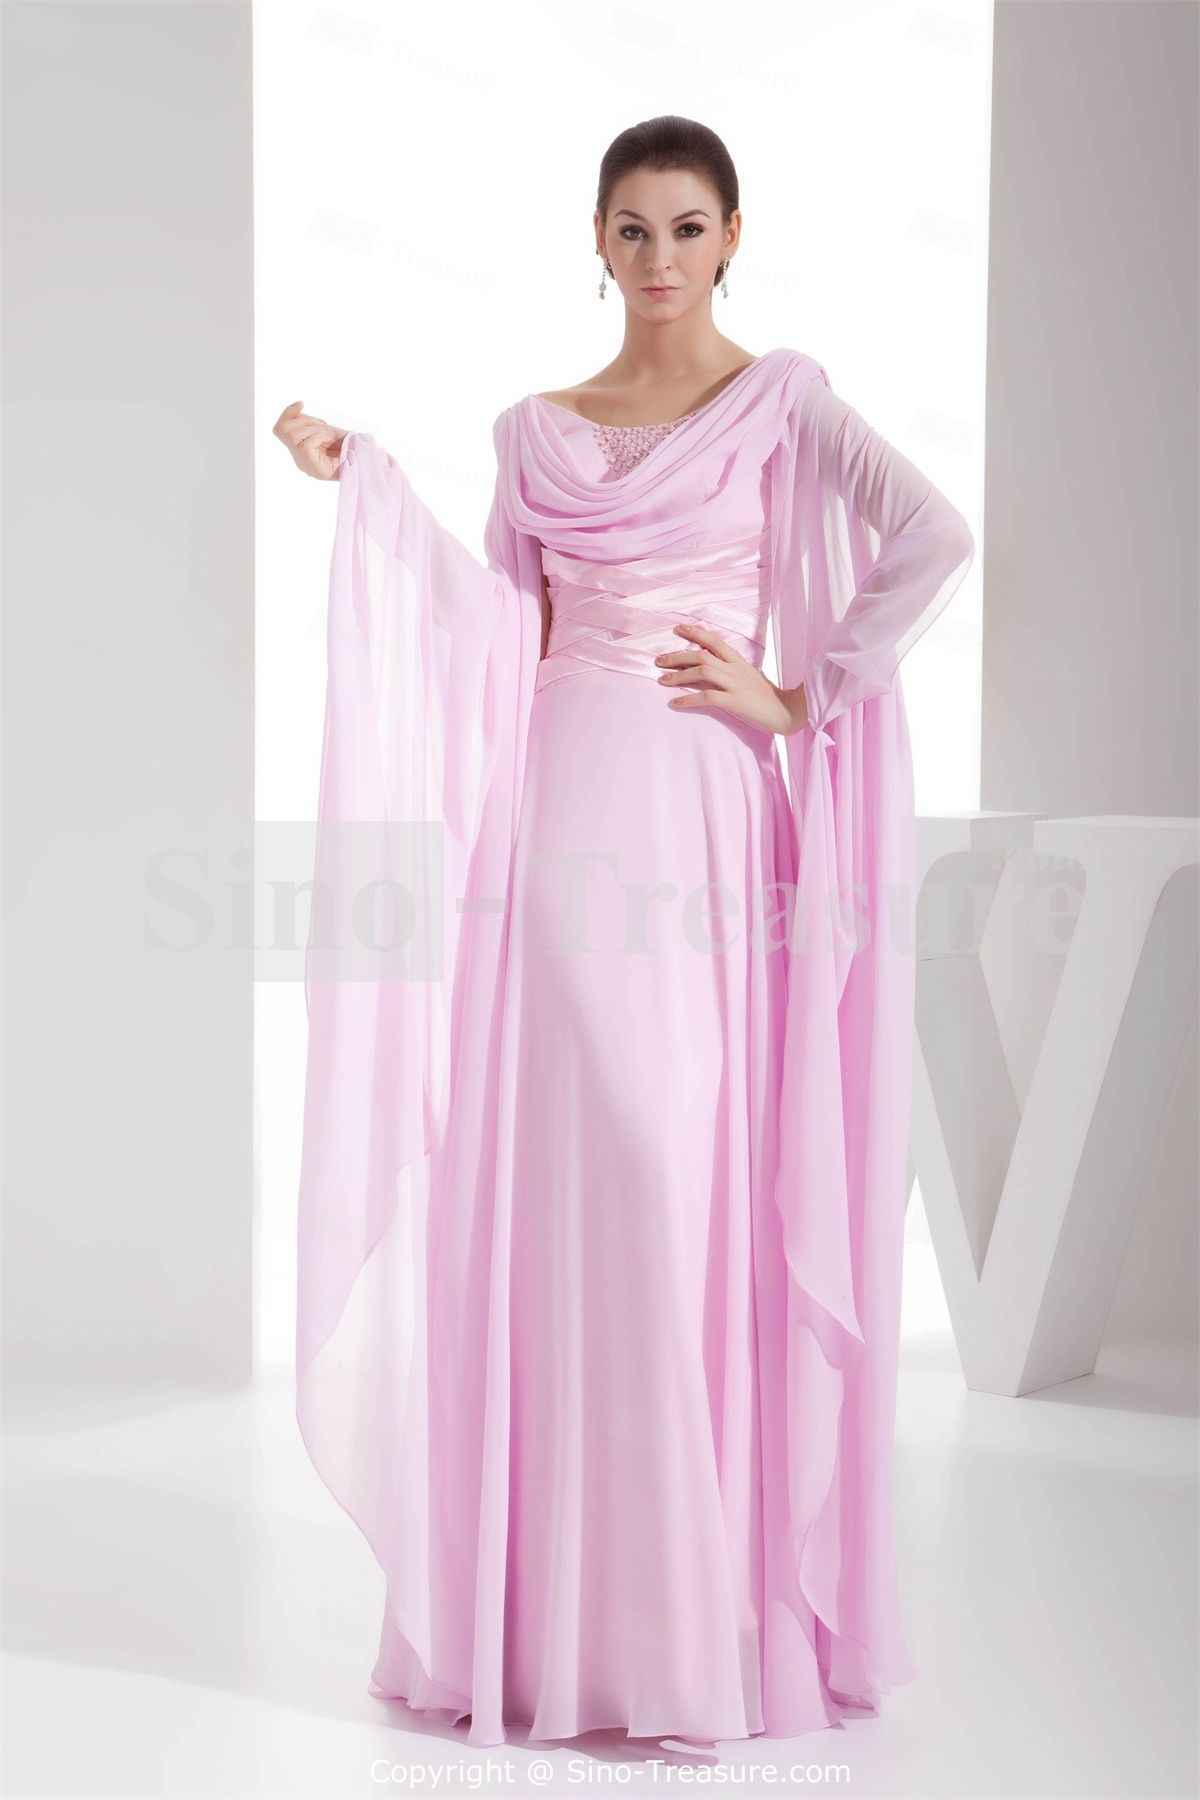 Images of Long Dresses With Sleeves - Klarosa